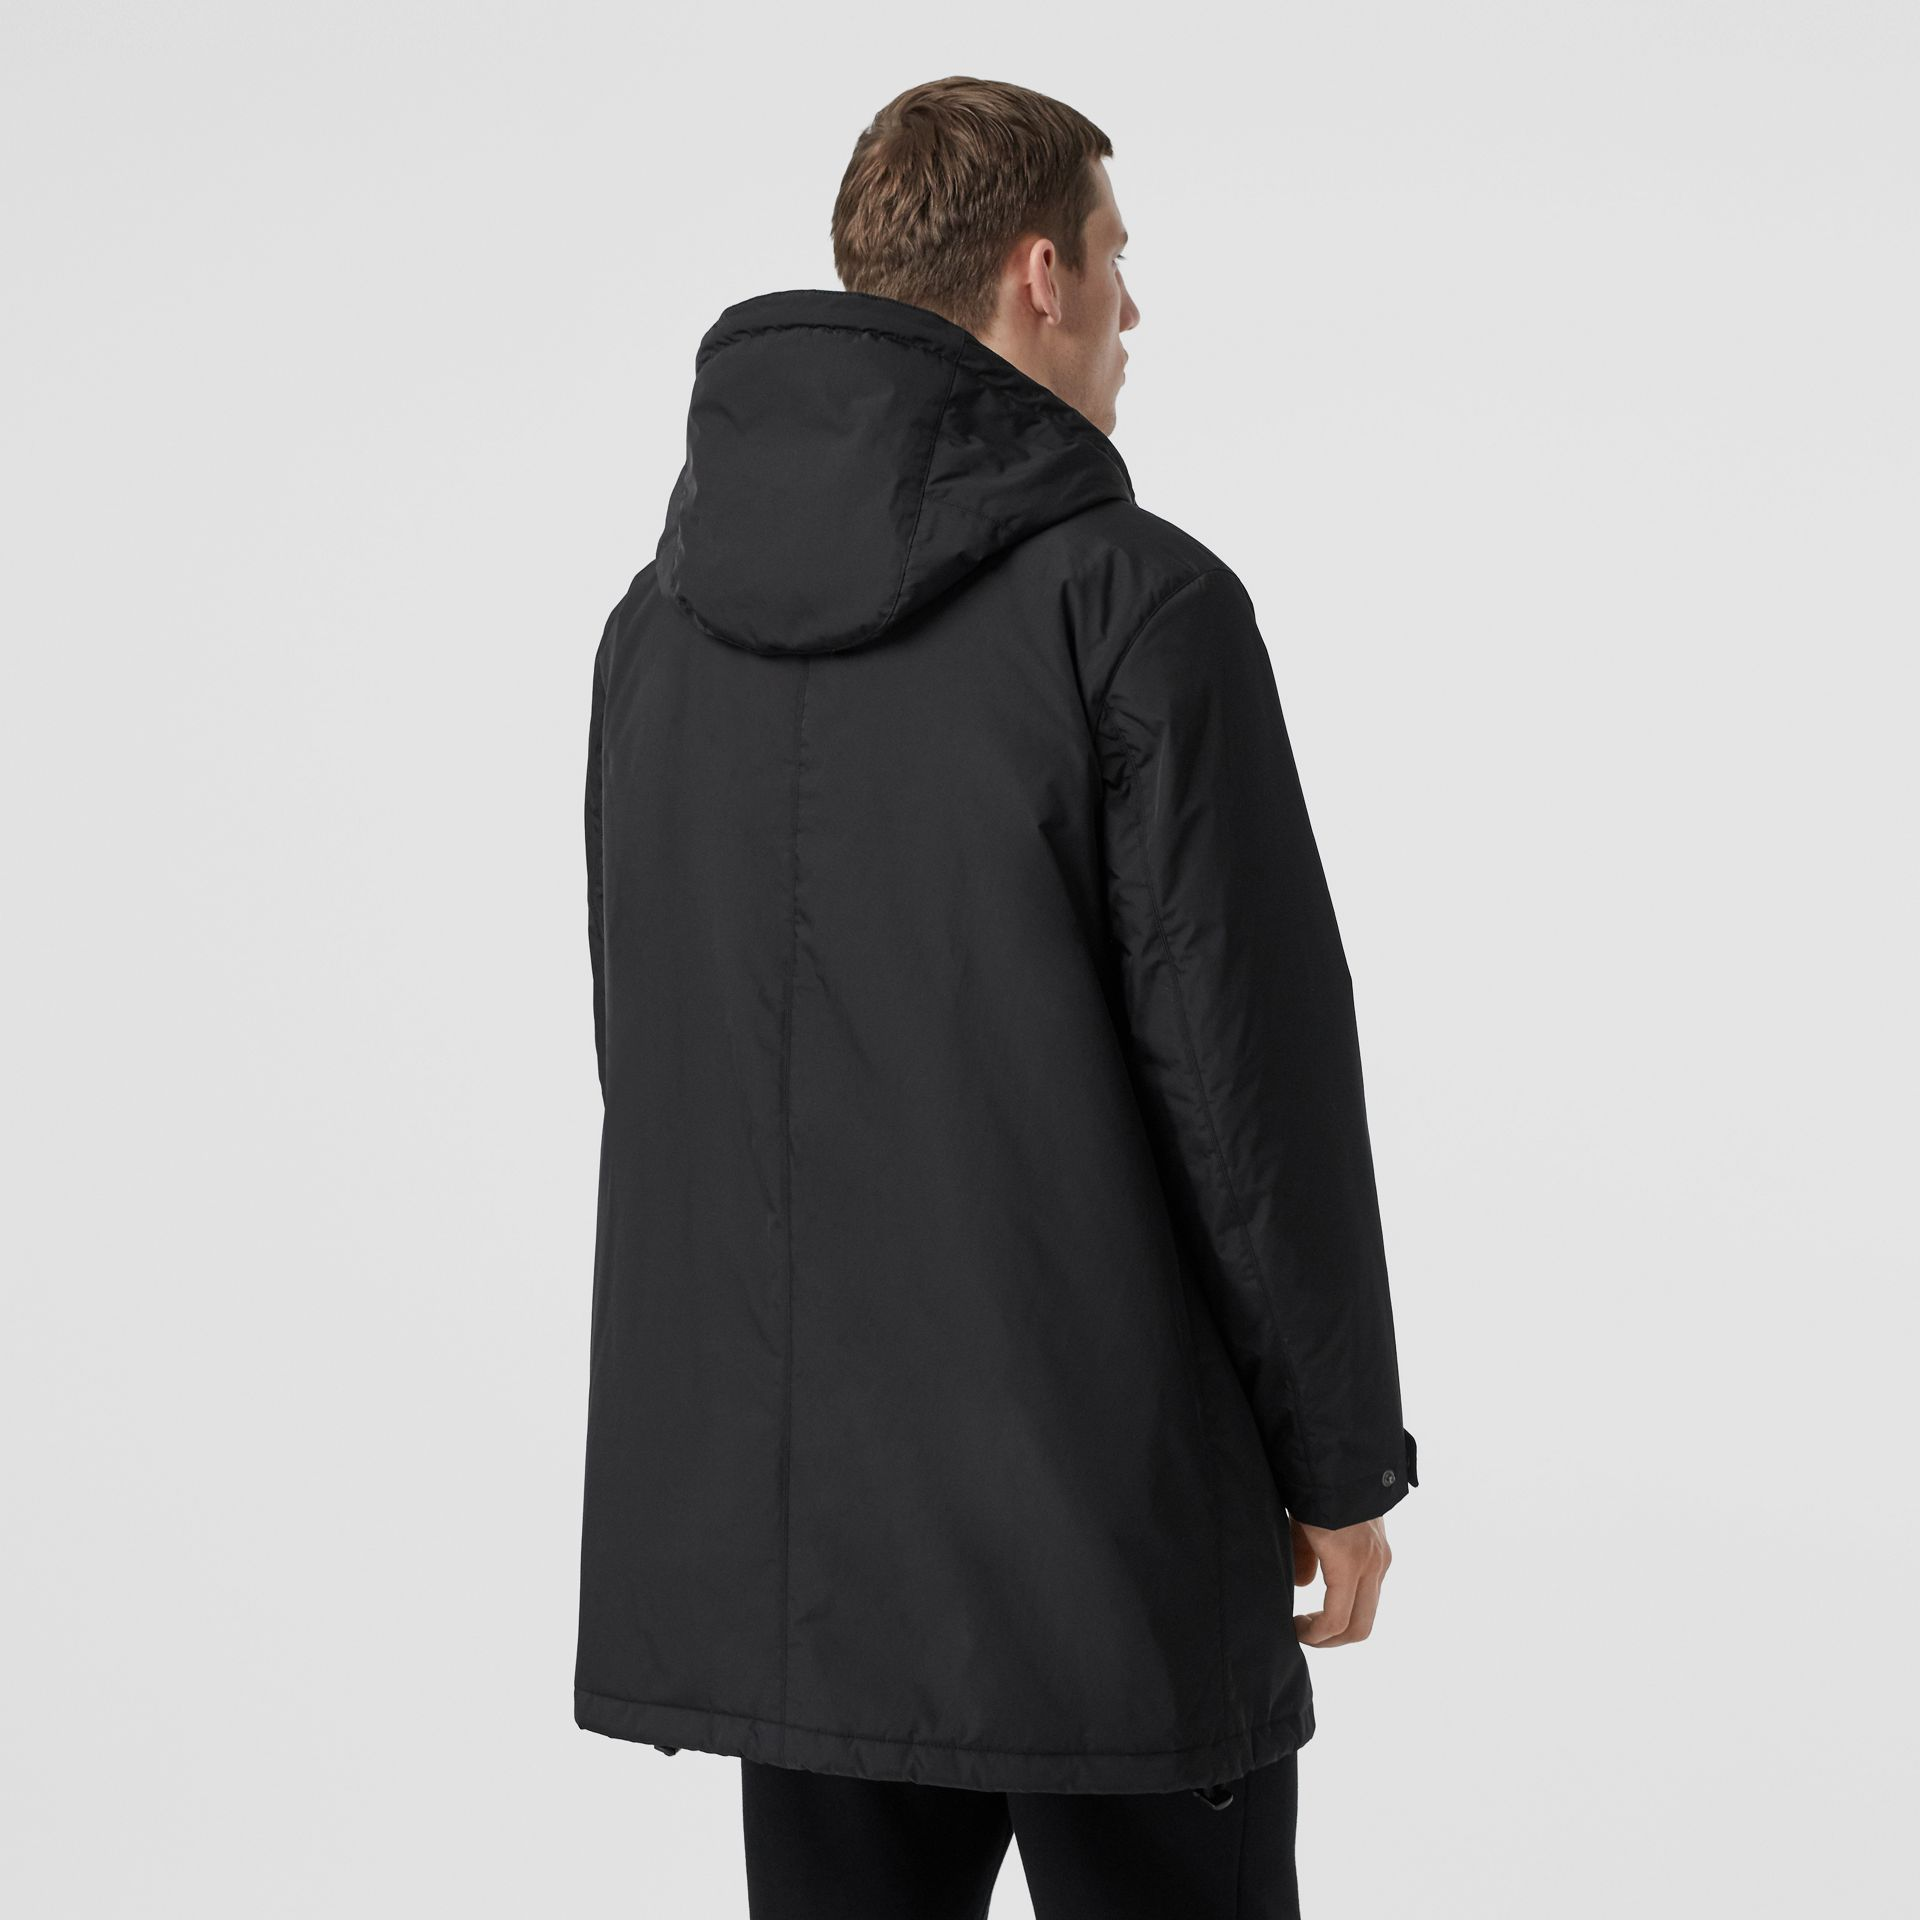 Monogram Motif Nylon Twill Hooded Coat in Black - Men | Burberry - gallery image 2